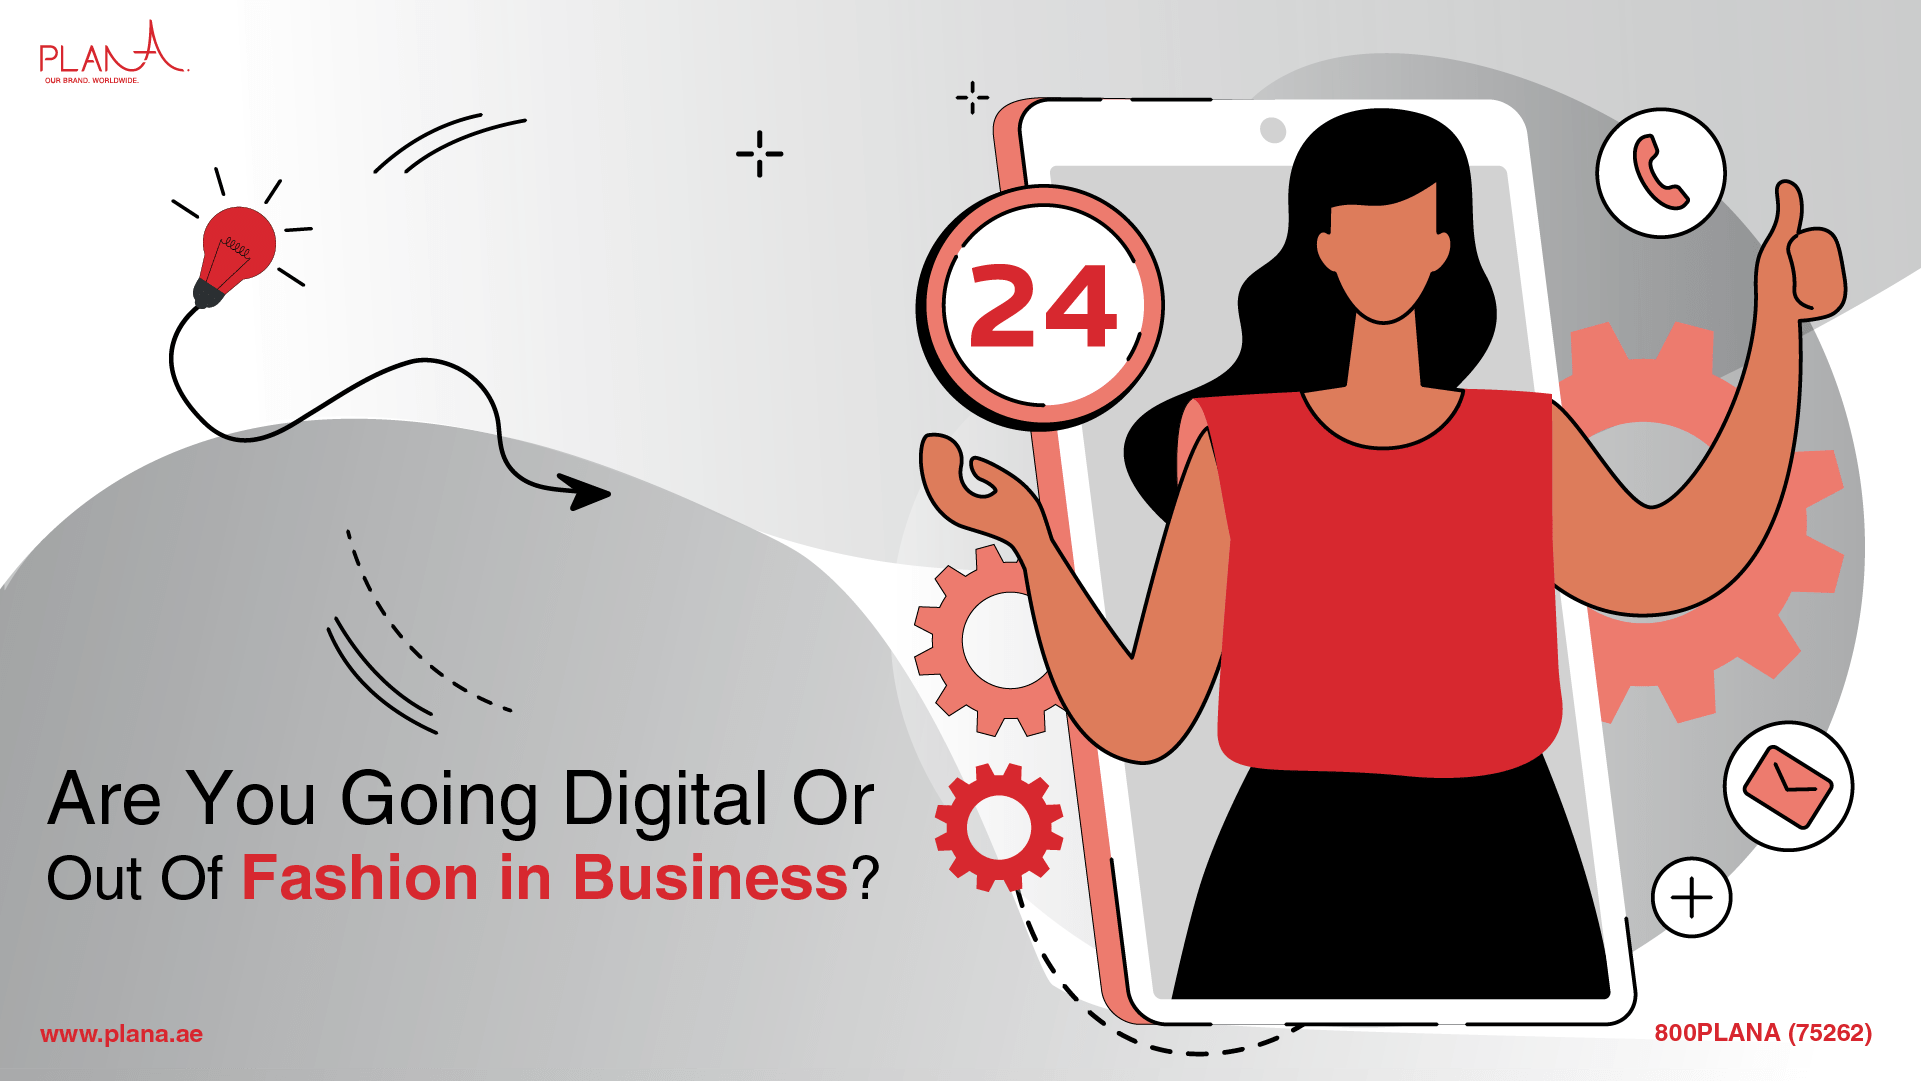 Are You Going Digital Or Out Of Fashion in Business?